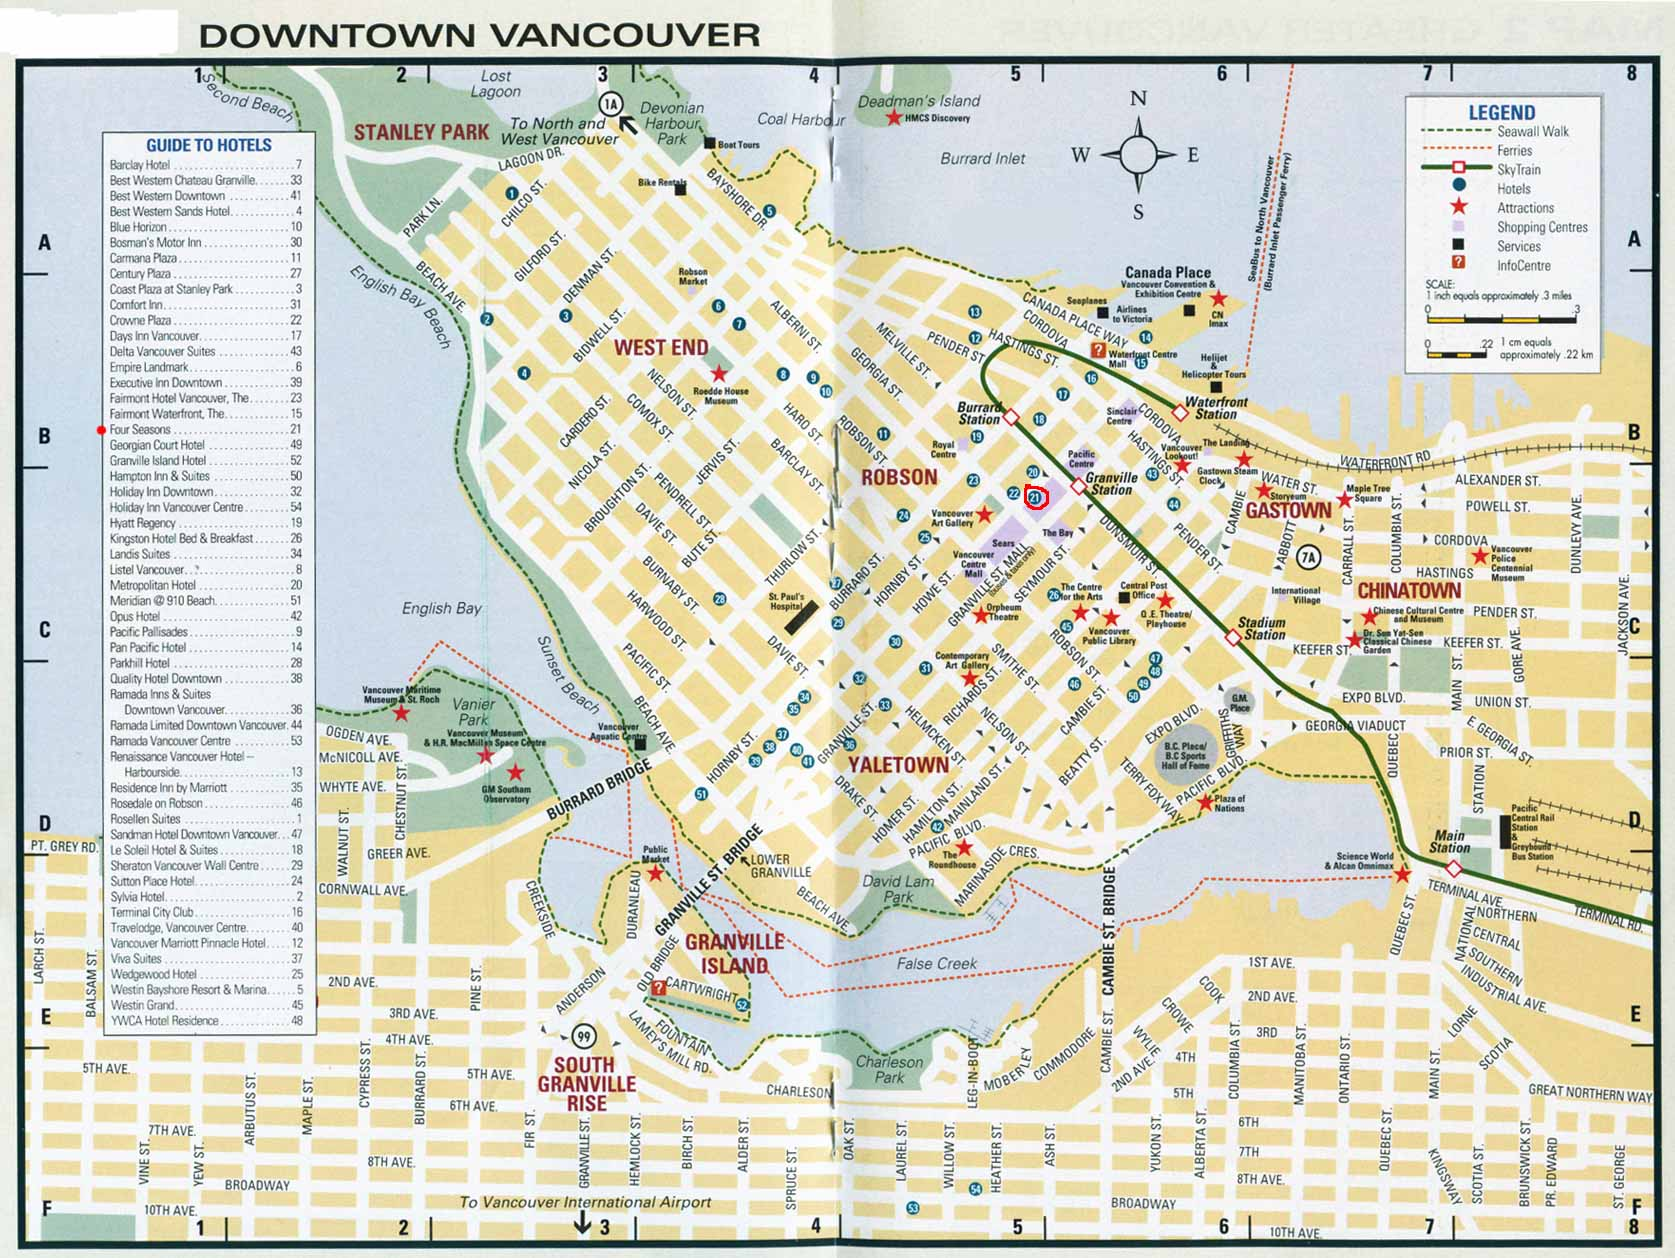 16 February 2010 – Vancouver Tourist Map